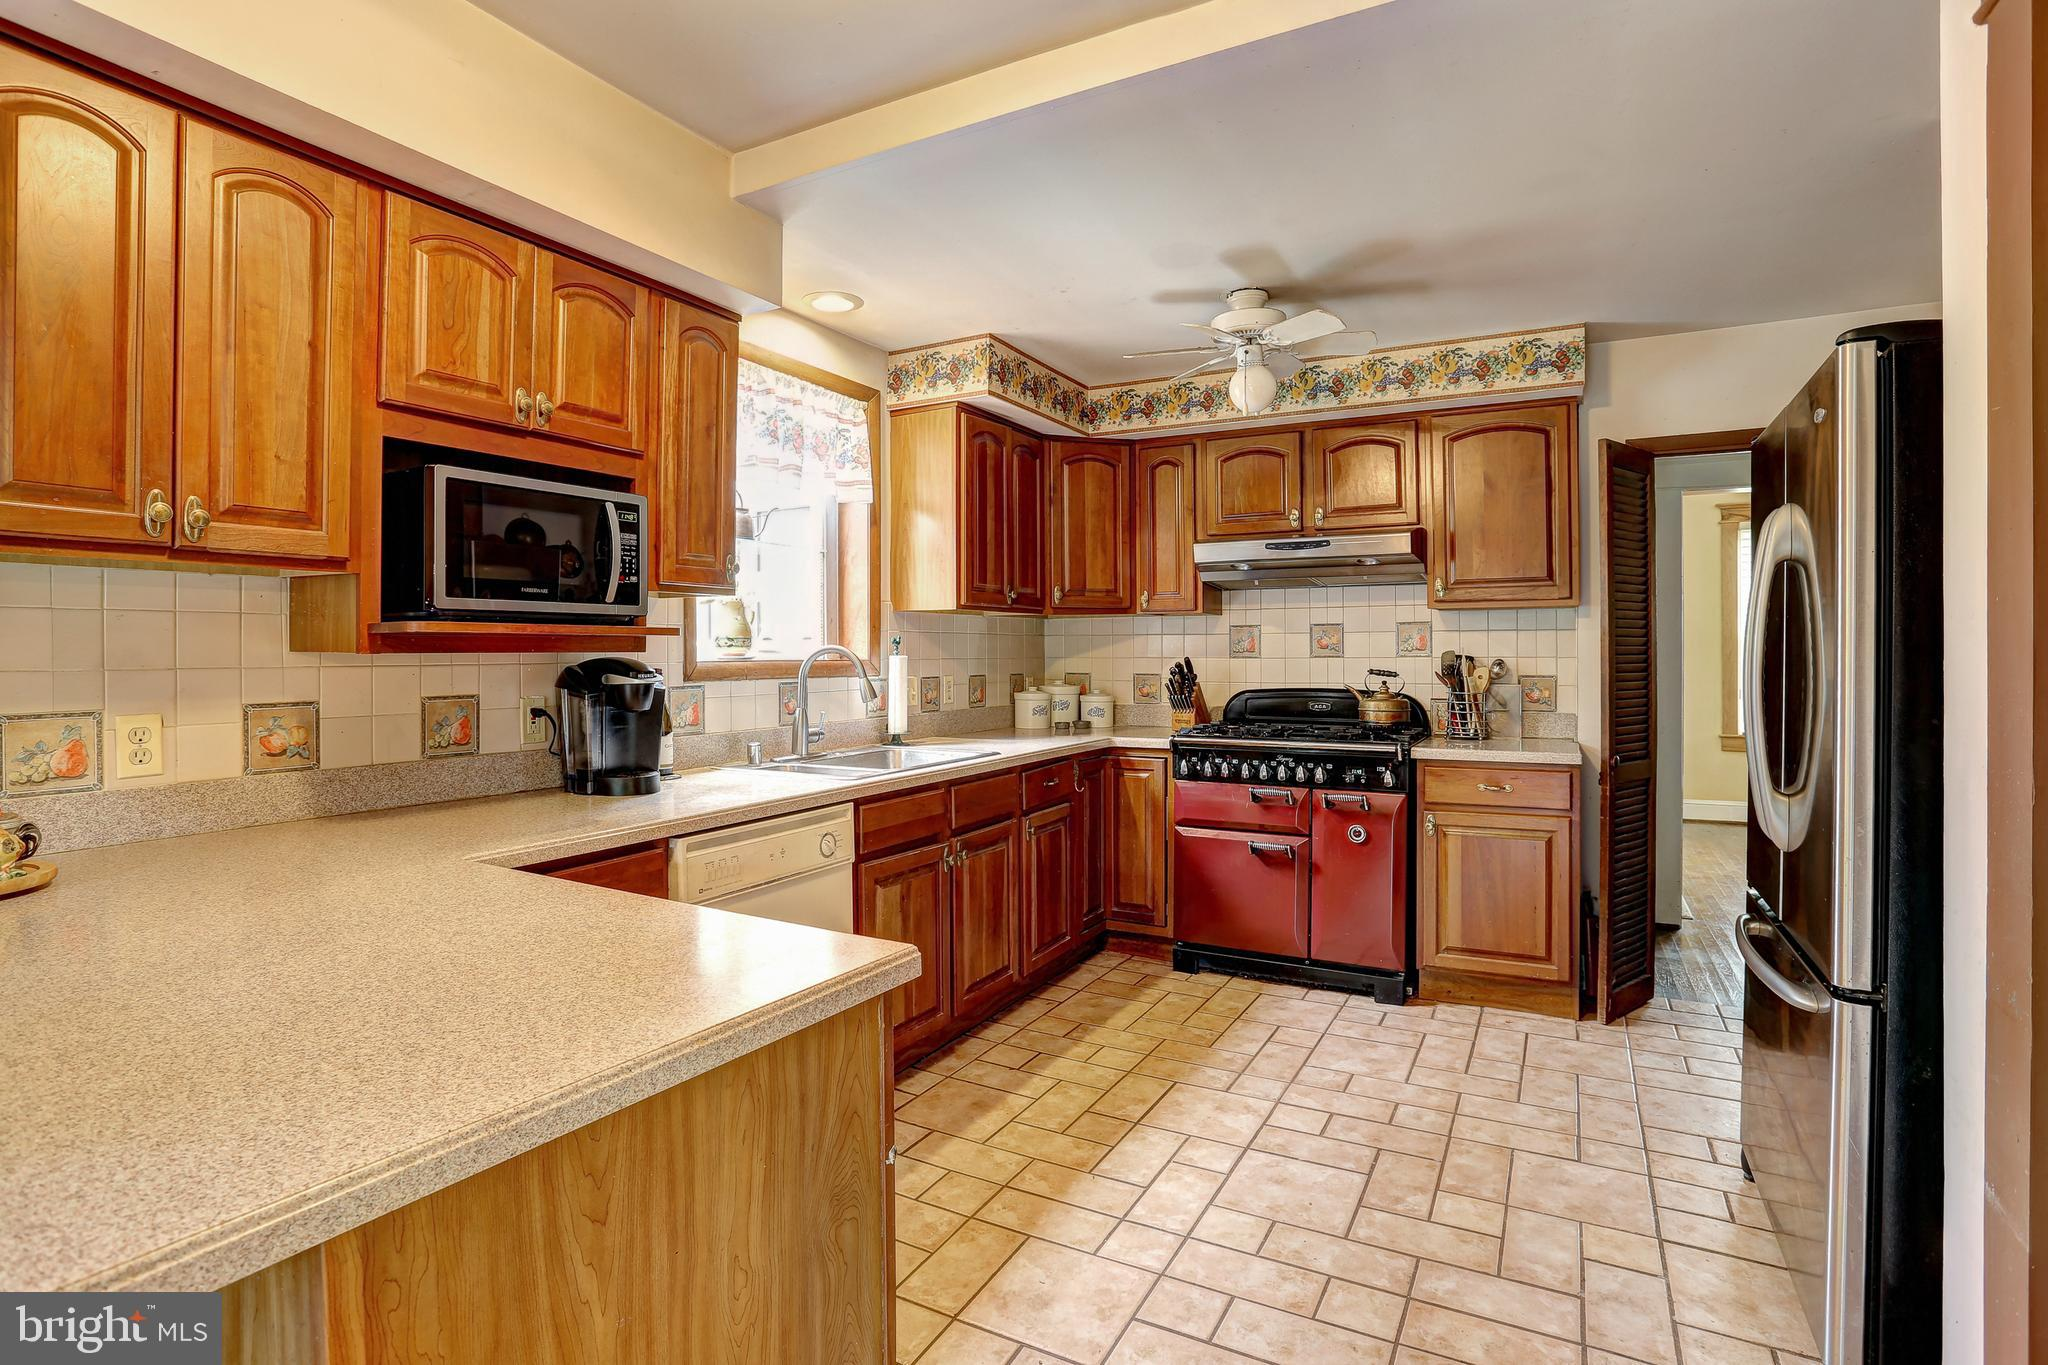 424 CLEVELAND ROAD, LINTHICUM HEIGHTS, MD 21090